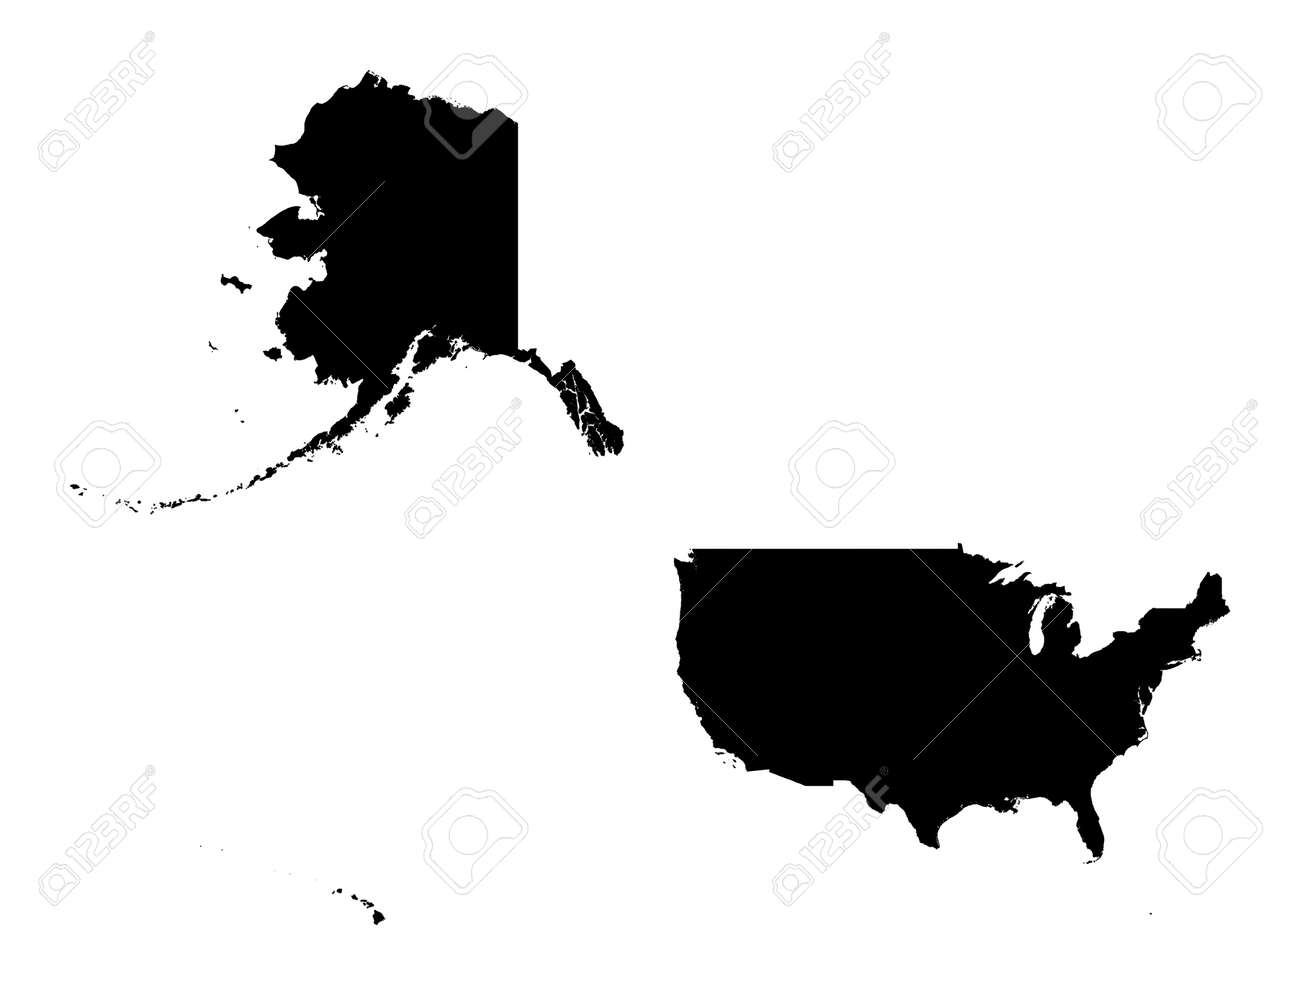 Detailed Isolated Map Of United States Black And White Mercator - Detailed map of us states